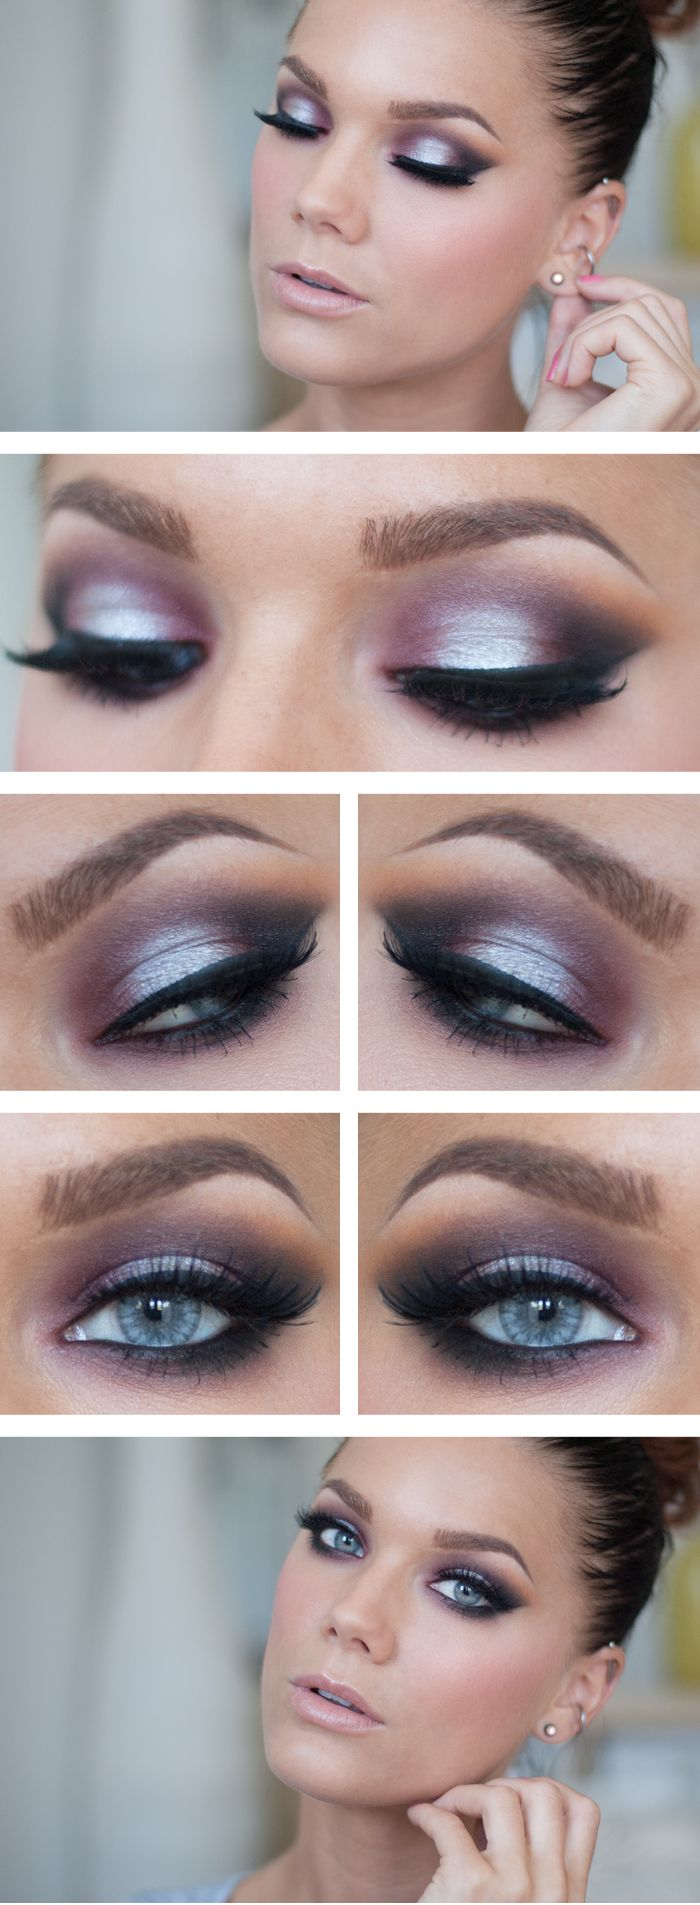 "Today's Look : ""Bad Blood"" -Linda Hallberg ( another gorgeous eye look that suits any eye color, with shades ranging from metallic silver, to a hint of burgundy, brown, and red...all used to create a stunning look.) 07/26/13"